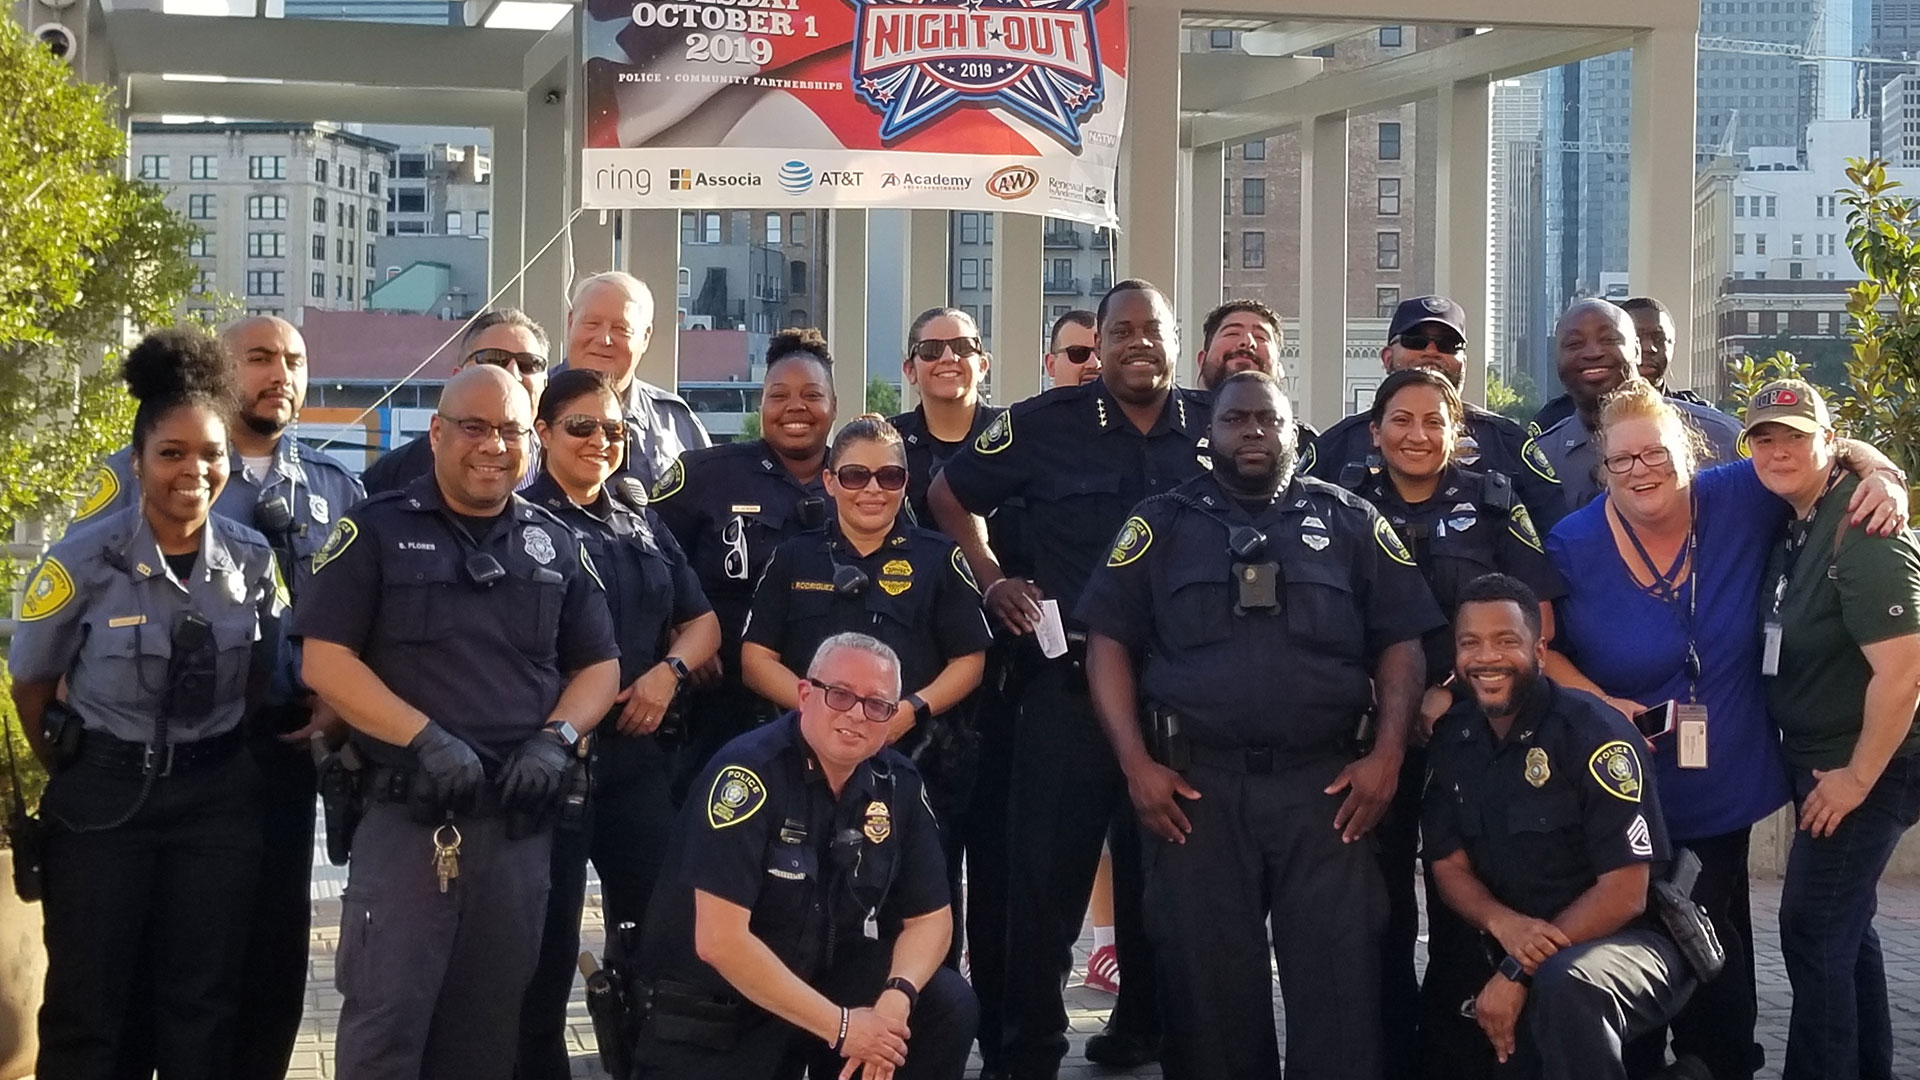 Group Photo of Police Chief and Officers